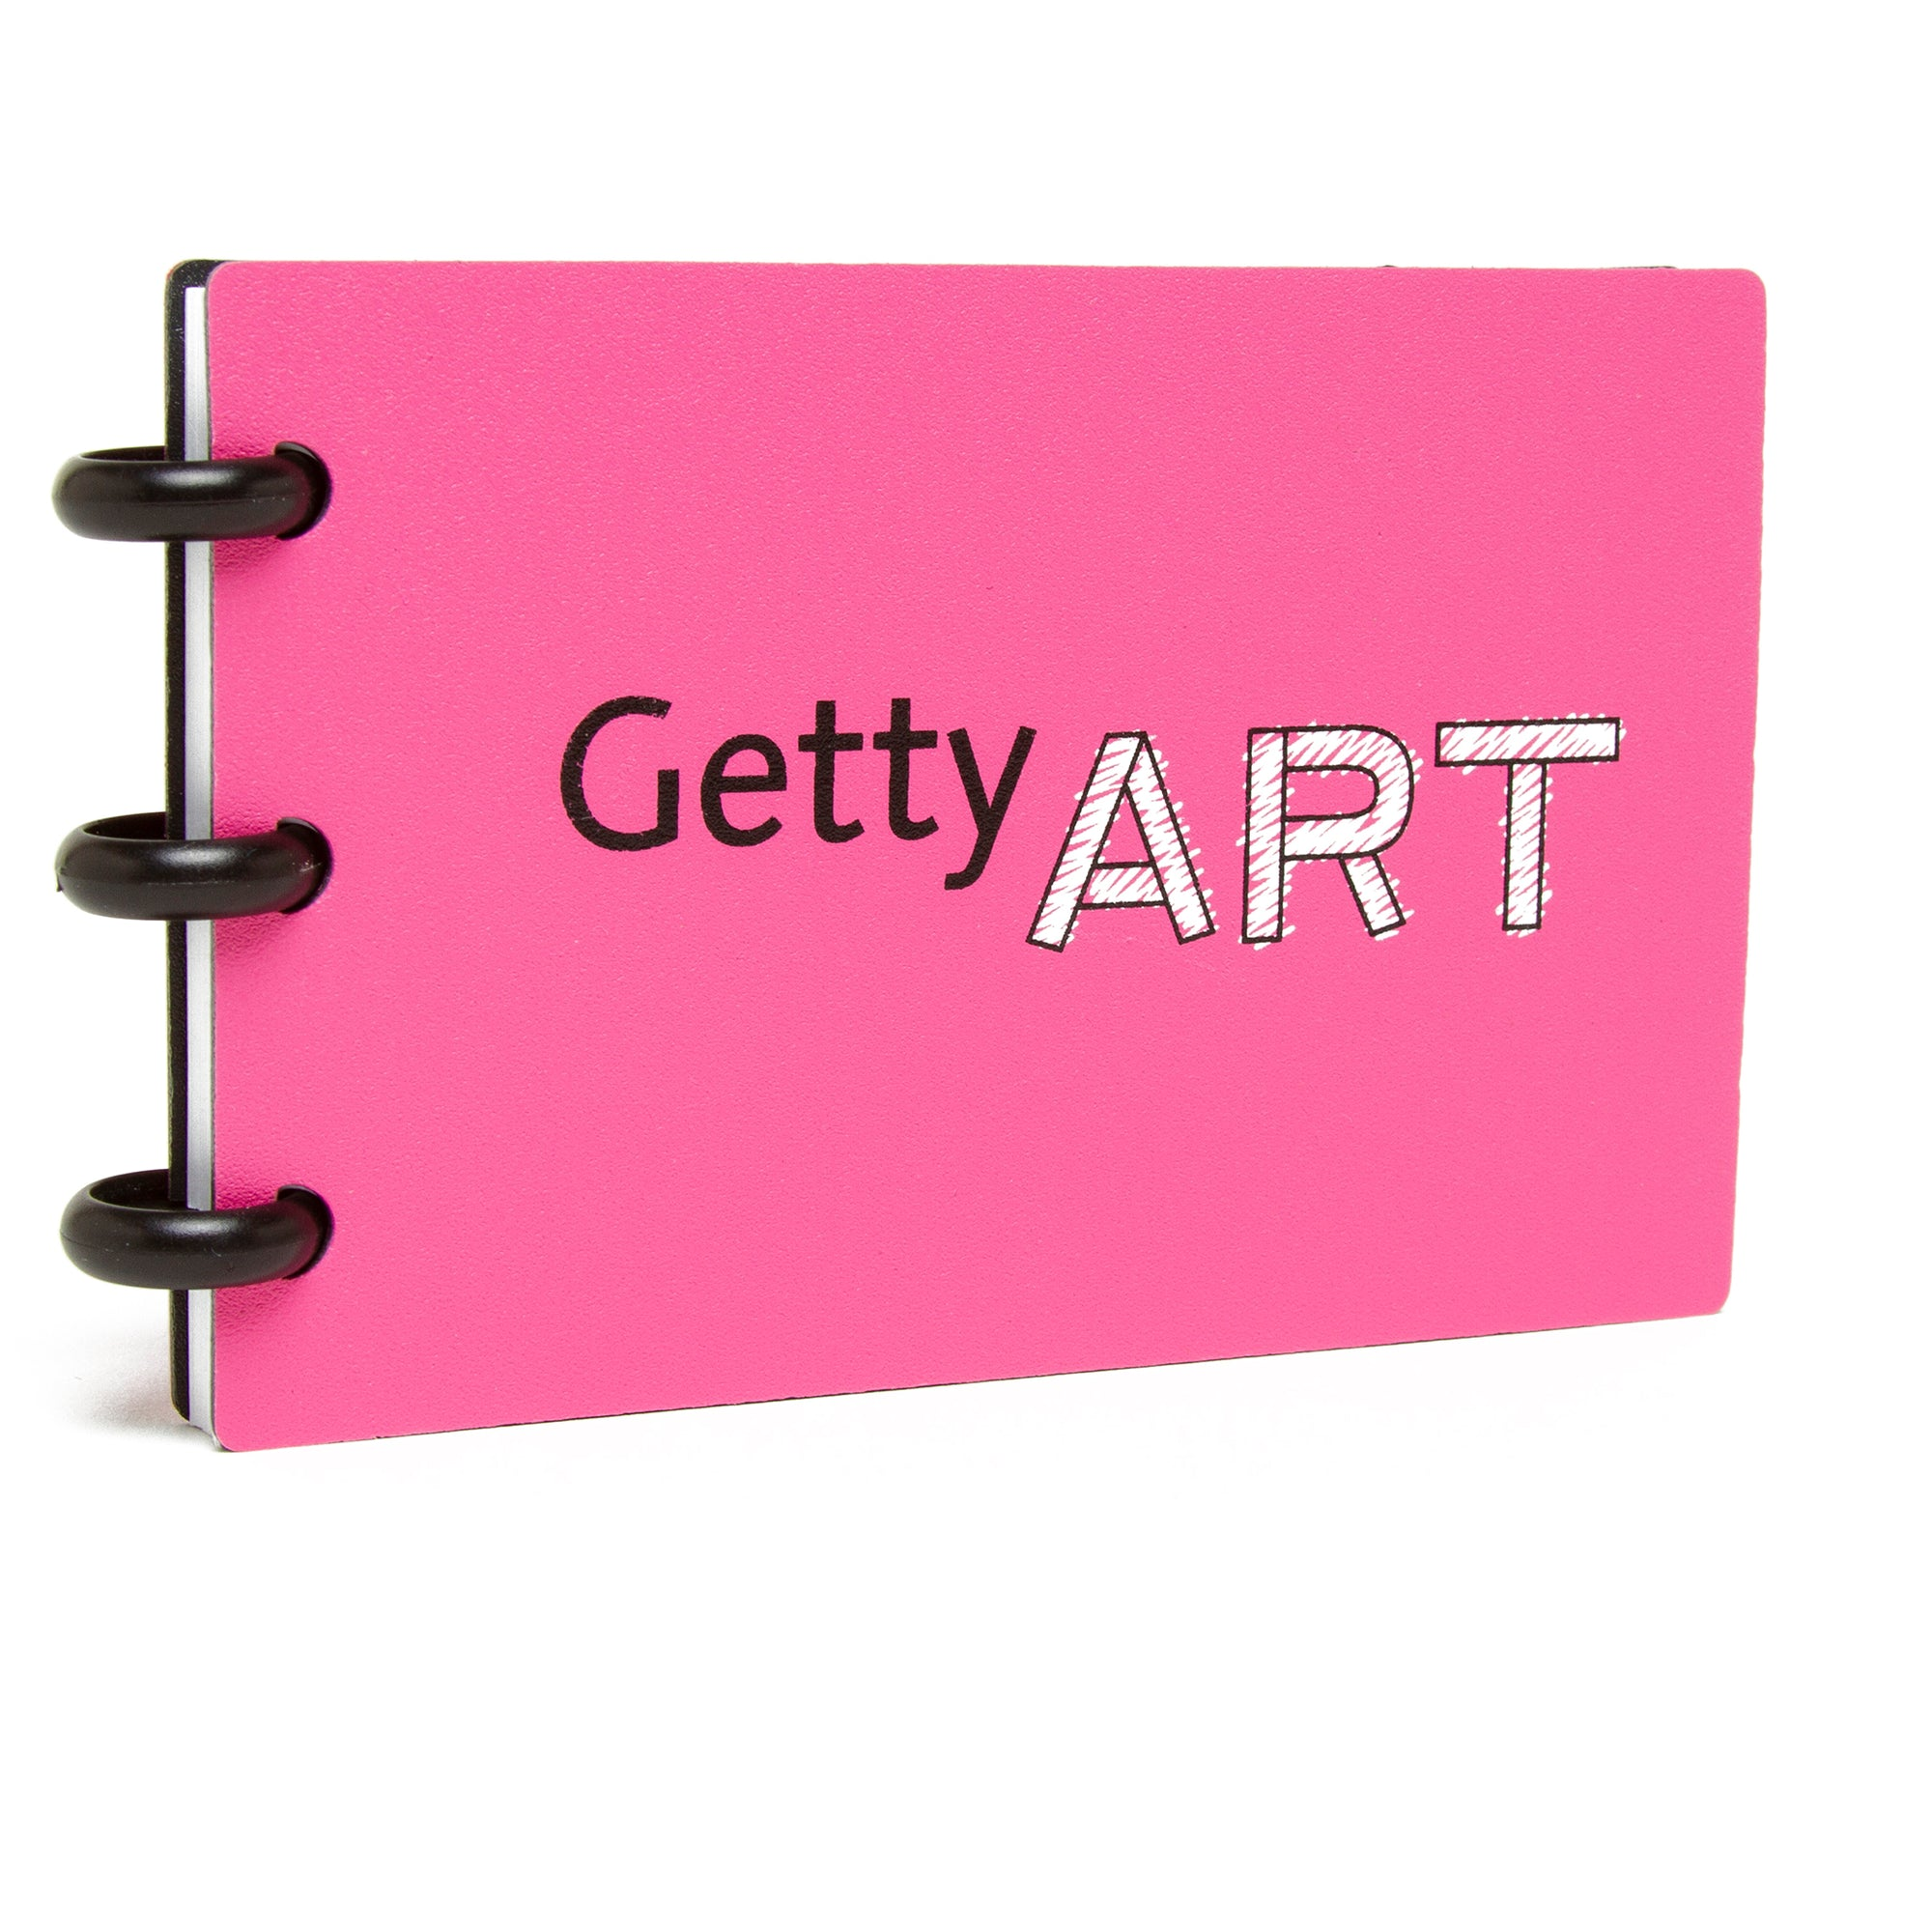 Getty Art Notepad | Getty Store